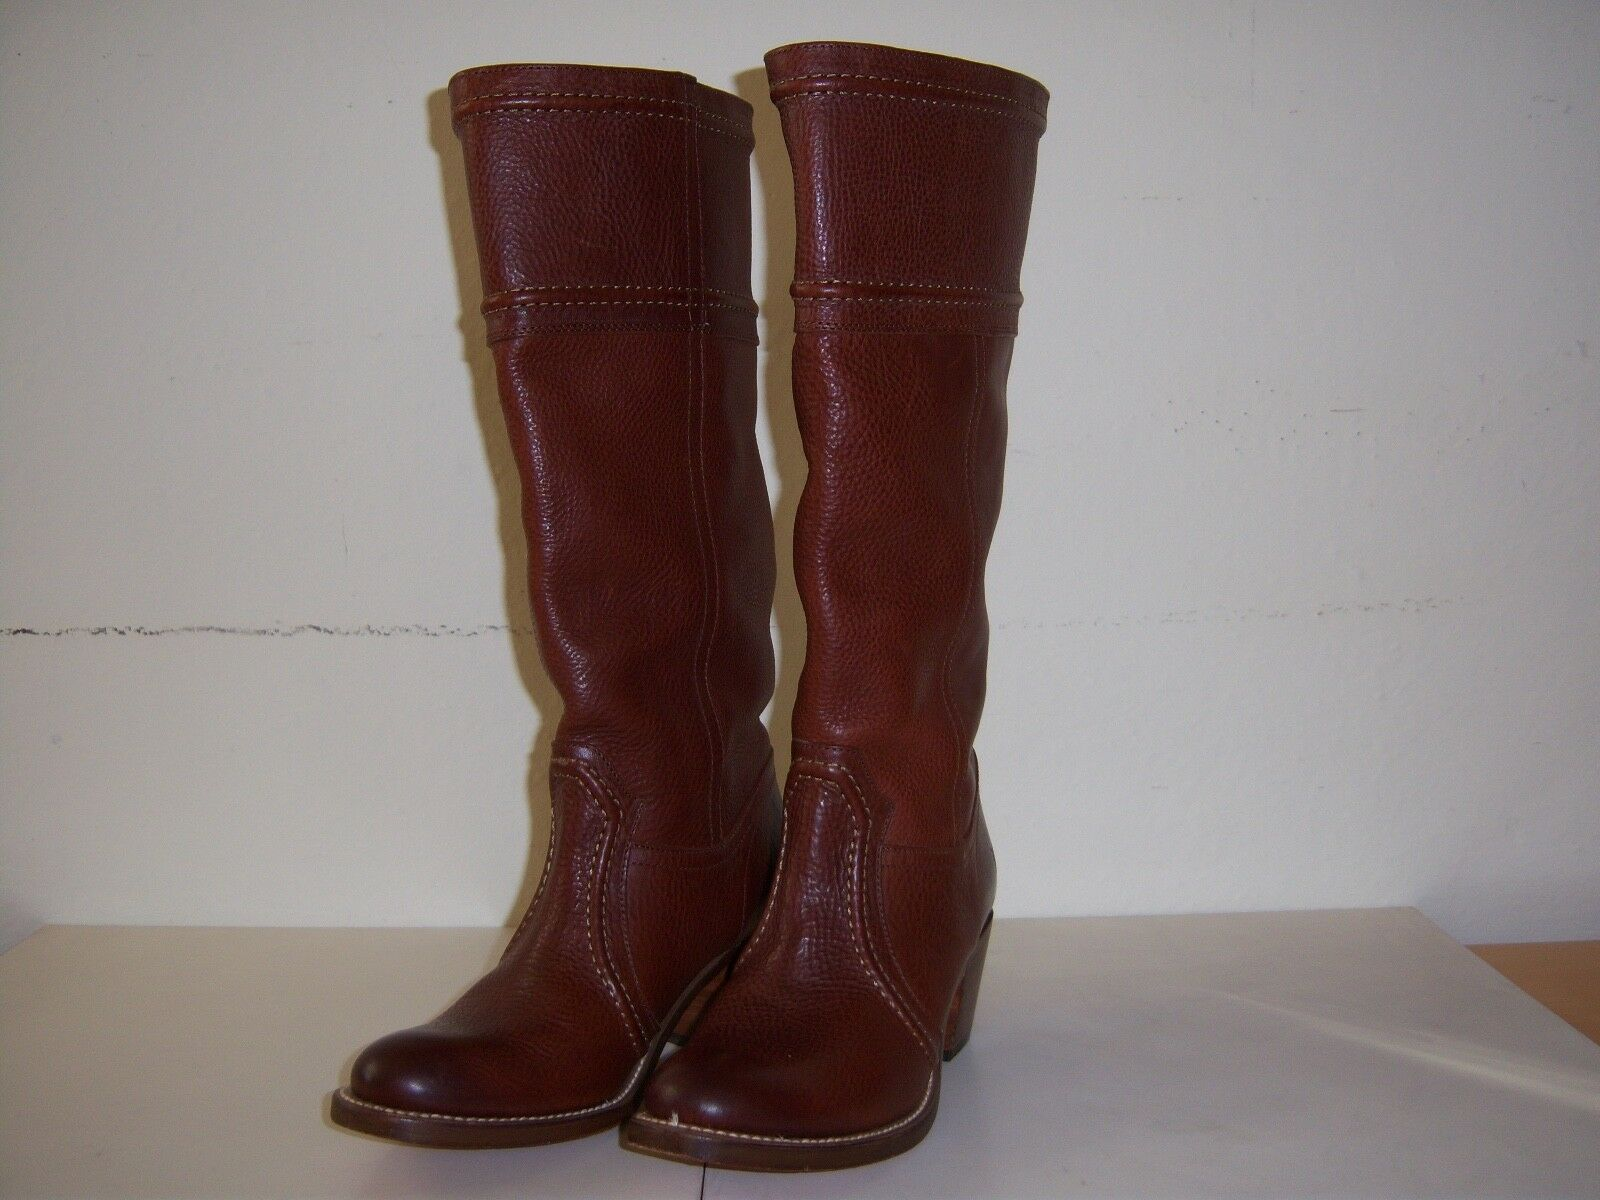 EUC Frye Brown Leather Boots Size 8.5 B Made in Mexico